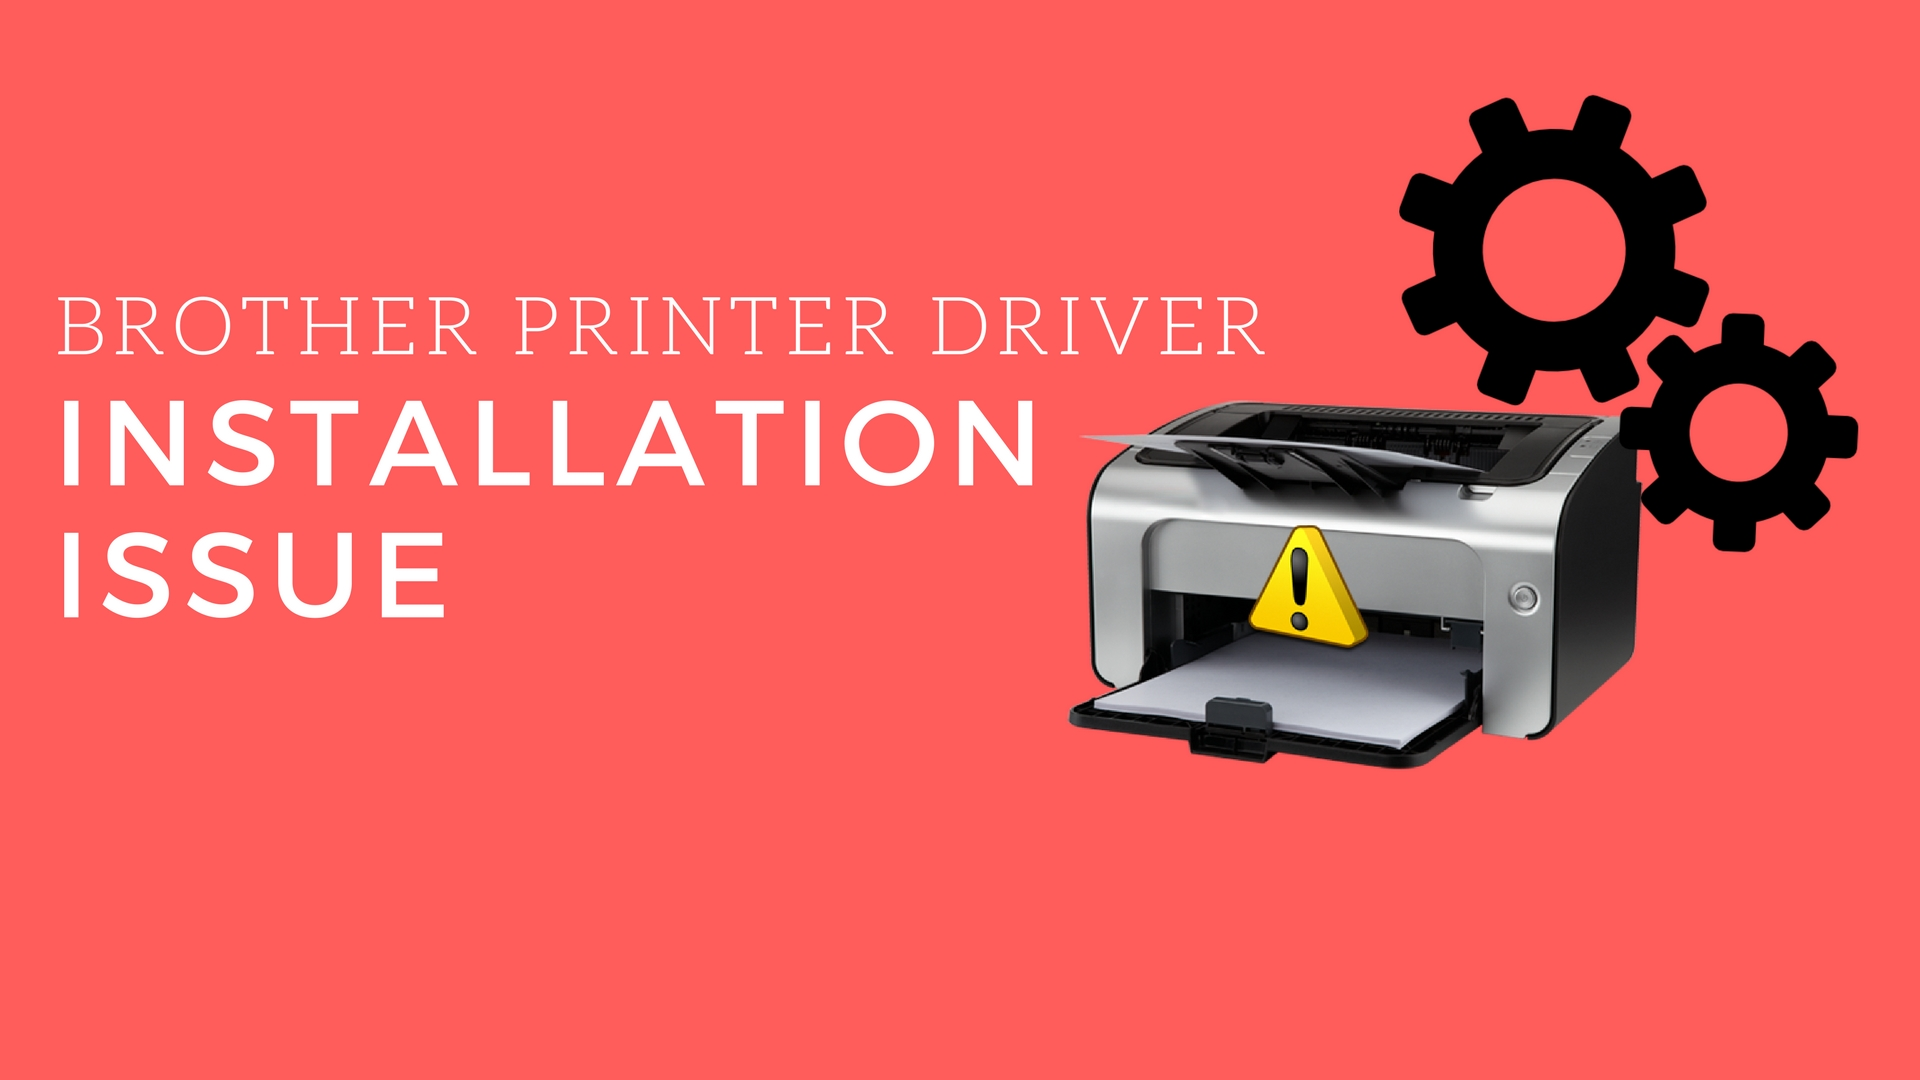 4 Steps To Fix Brother Printer Driver Installation Issue